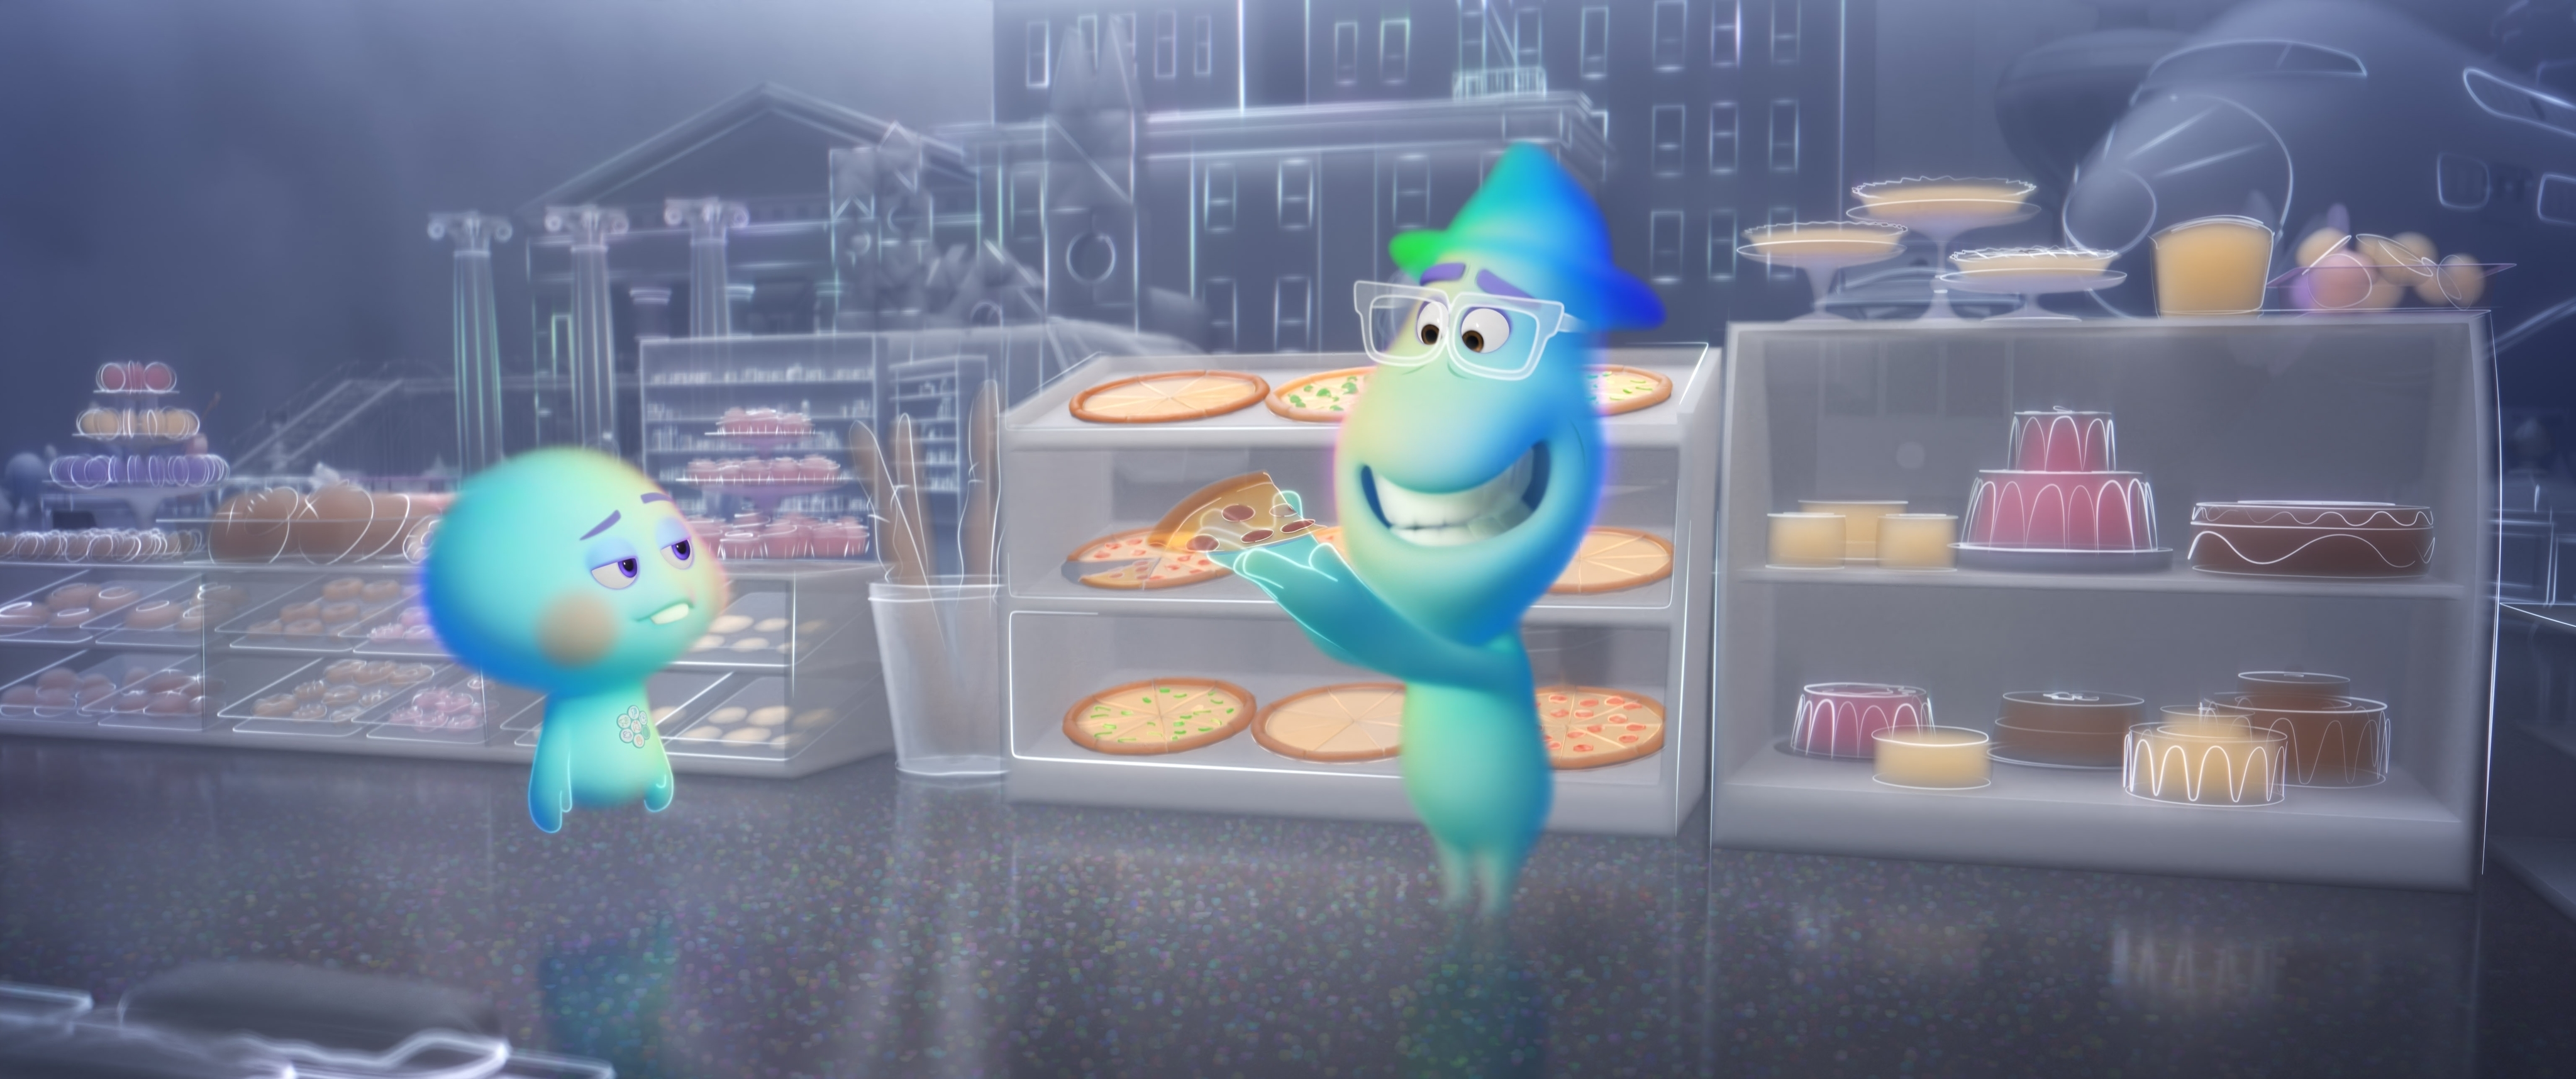 22, voiced by Tina Fey, teaching newcomer Joe that pizza's just not the same when you lack a corporeal form